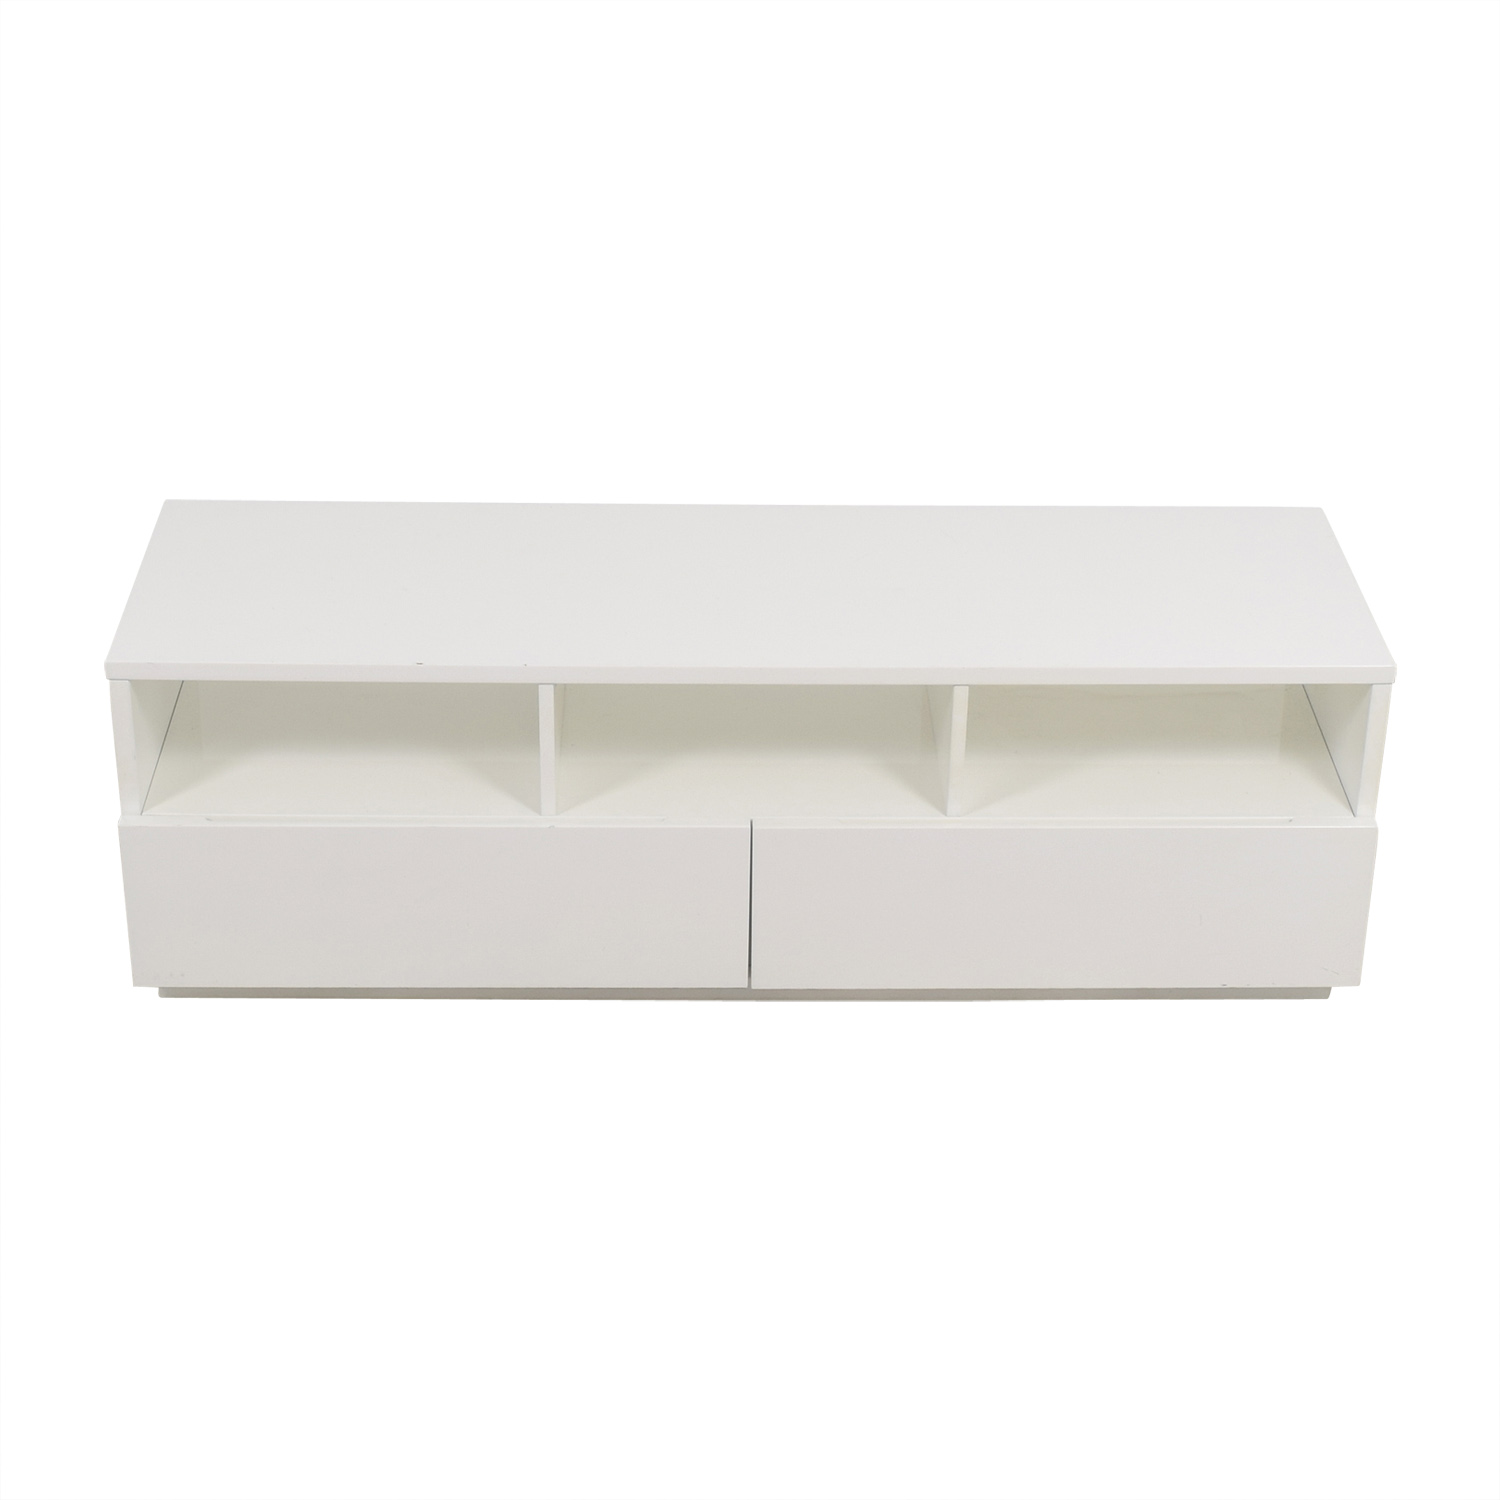 CB2 CB2 Chill White Media Console With Two Drawers on sale